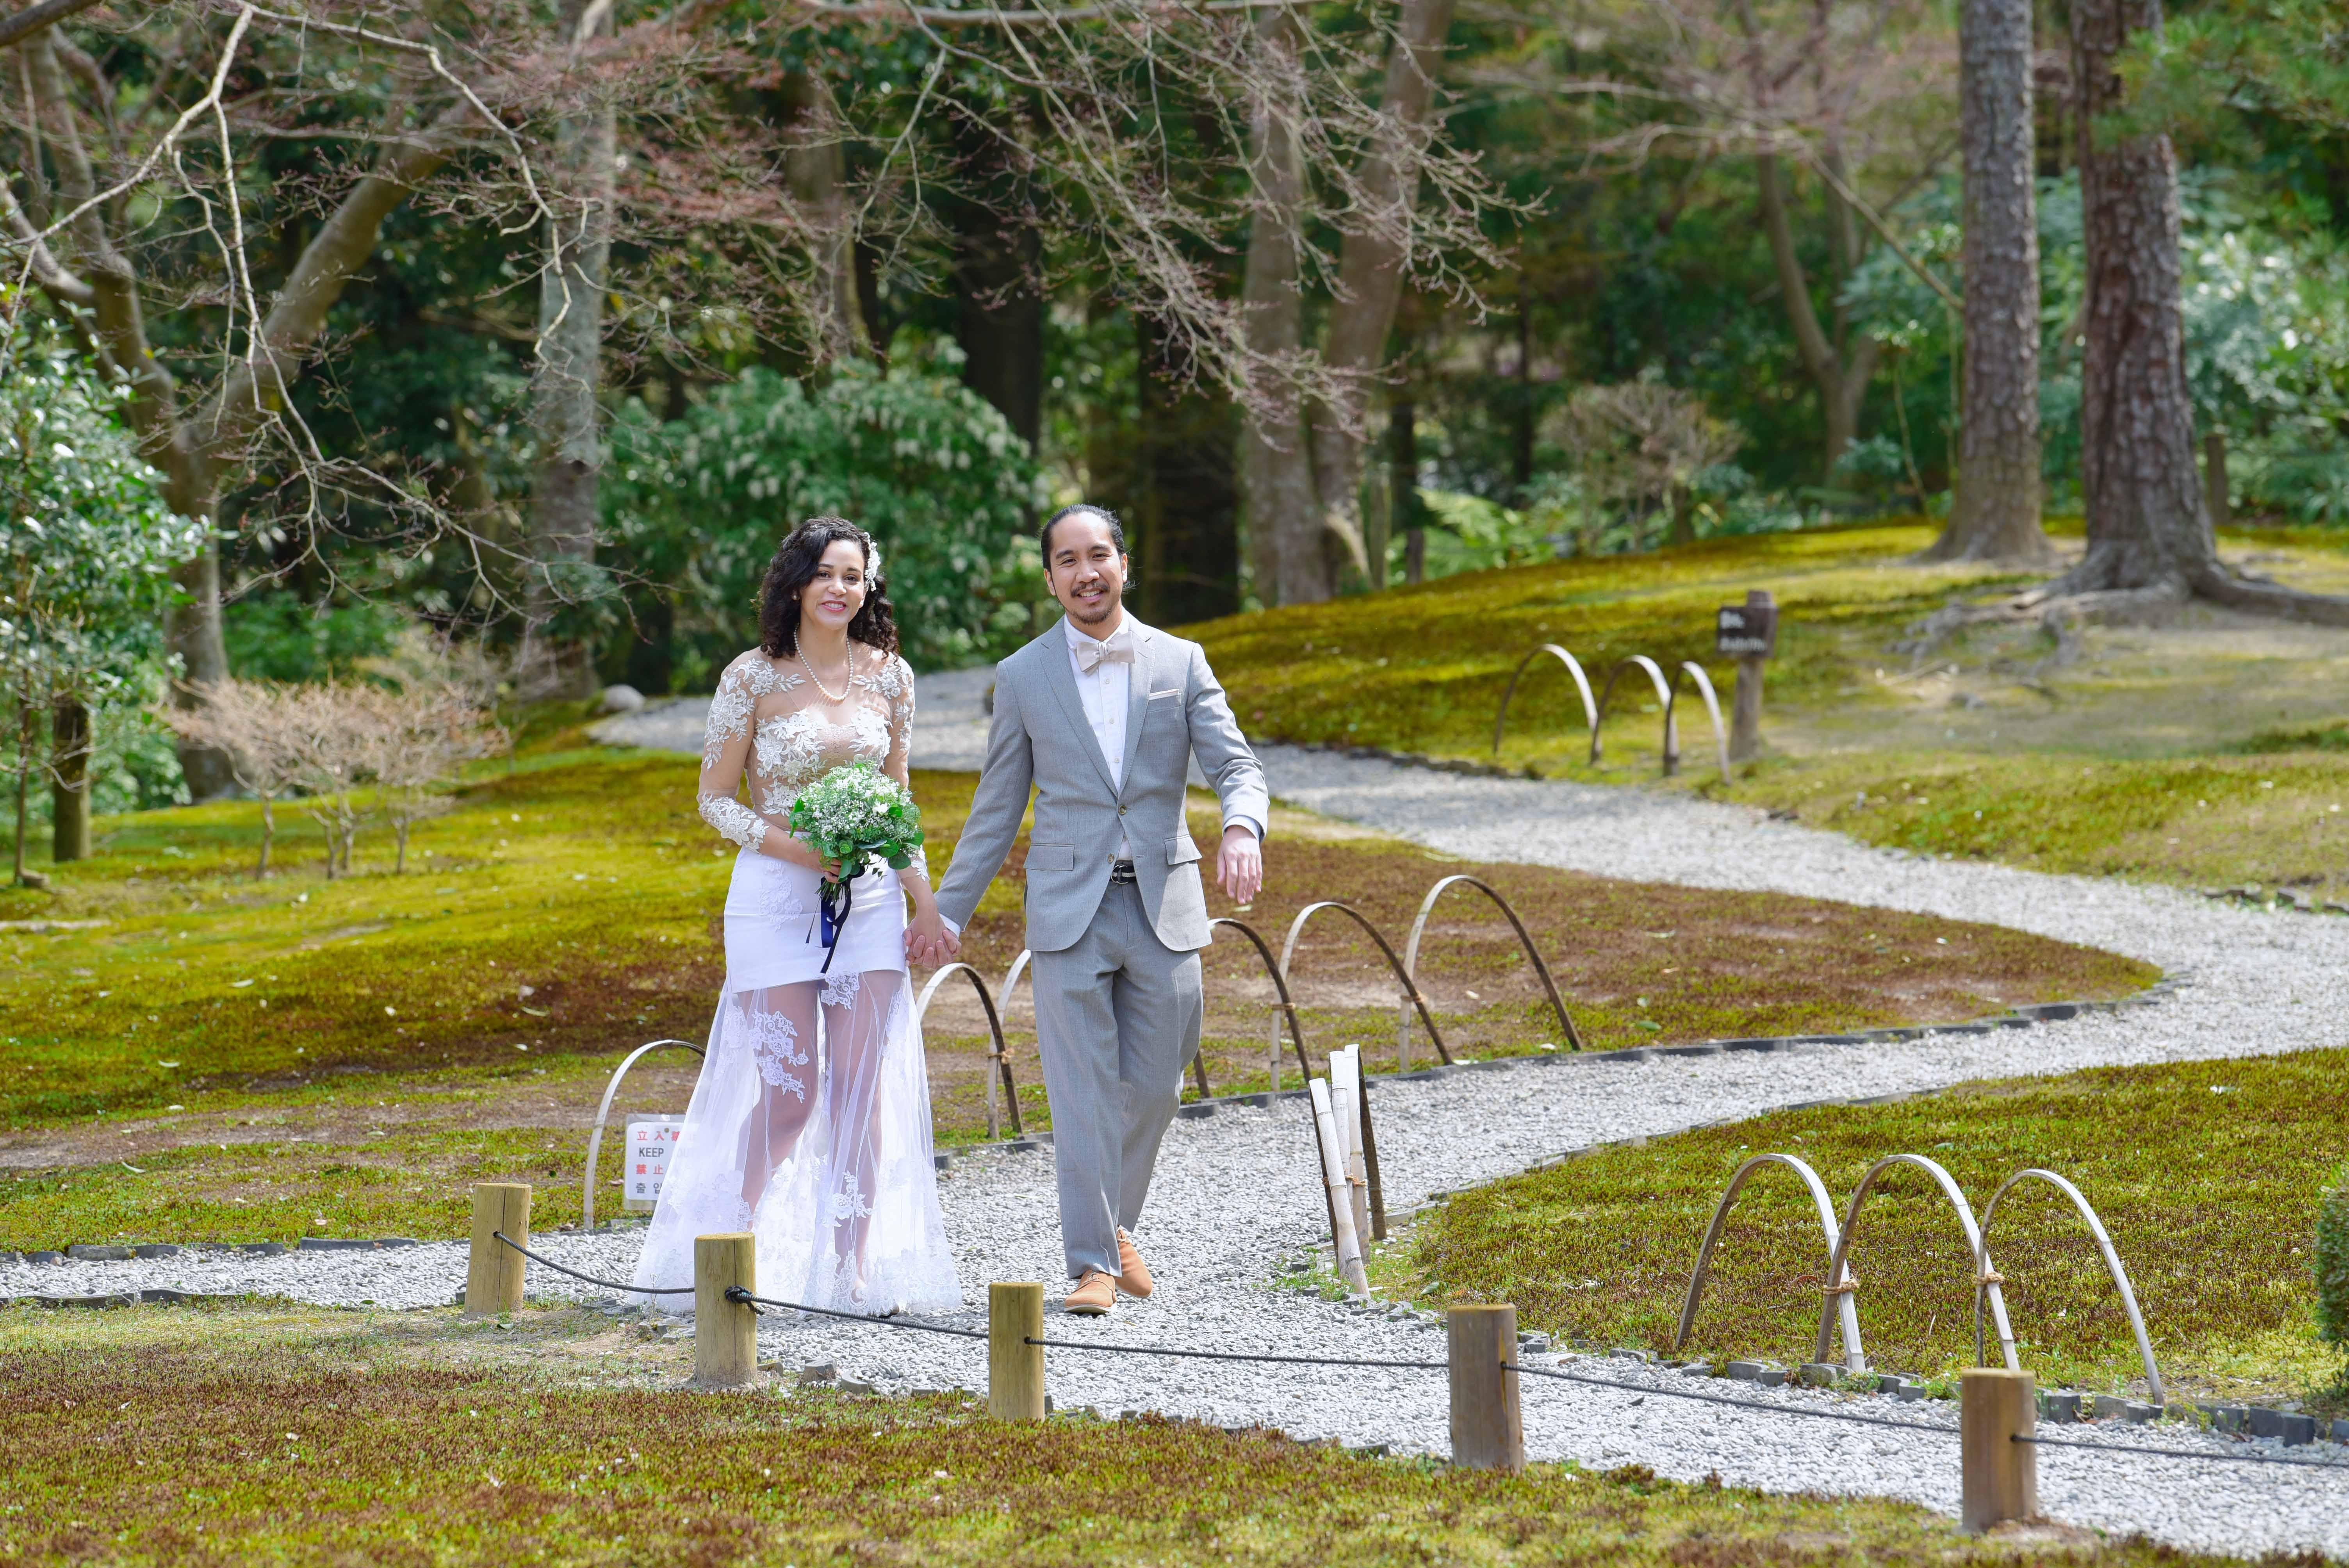 Elopement Ceremony in Nara